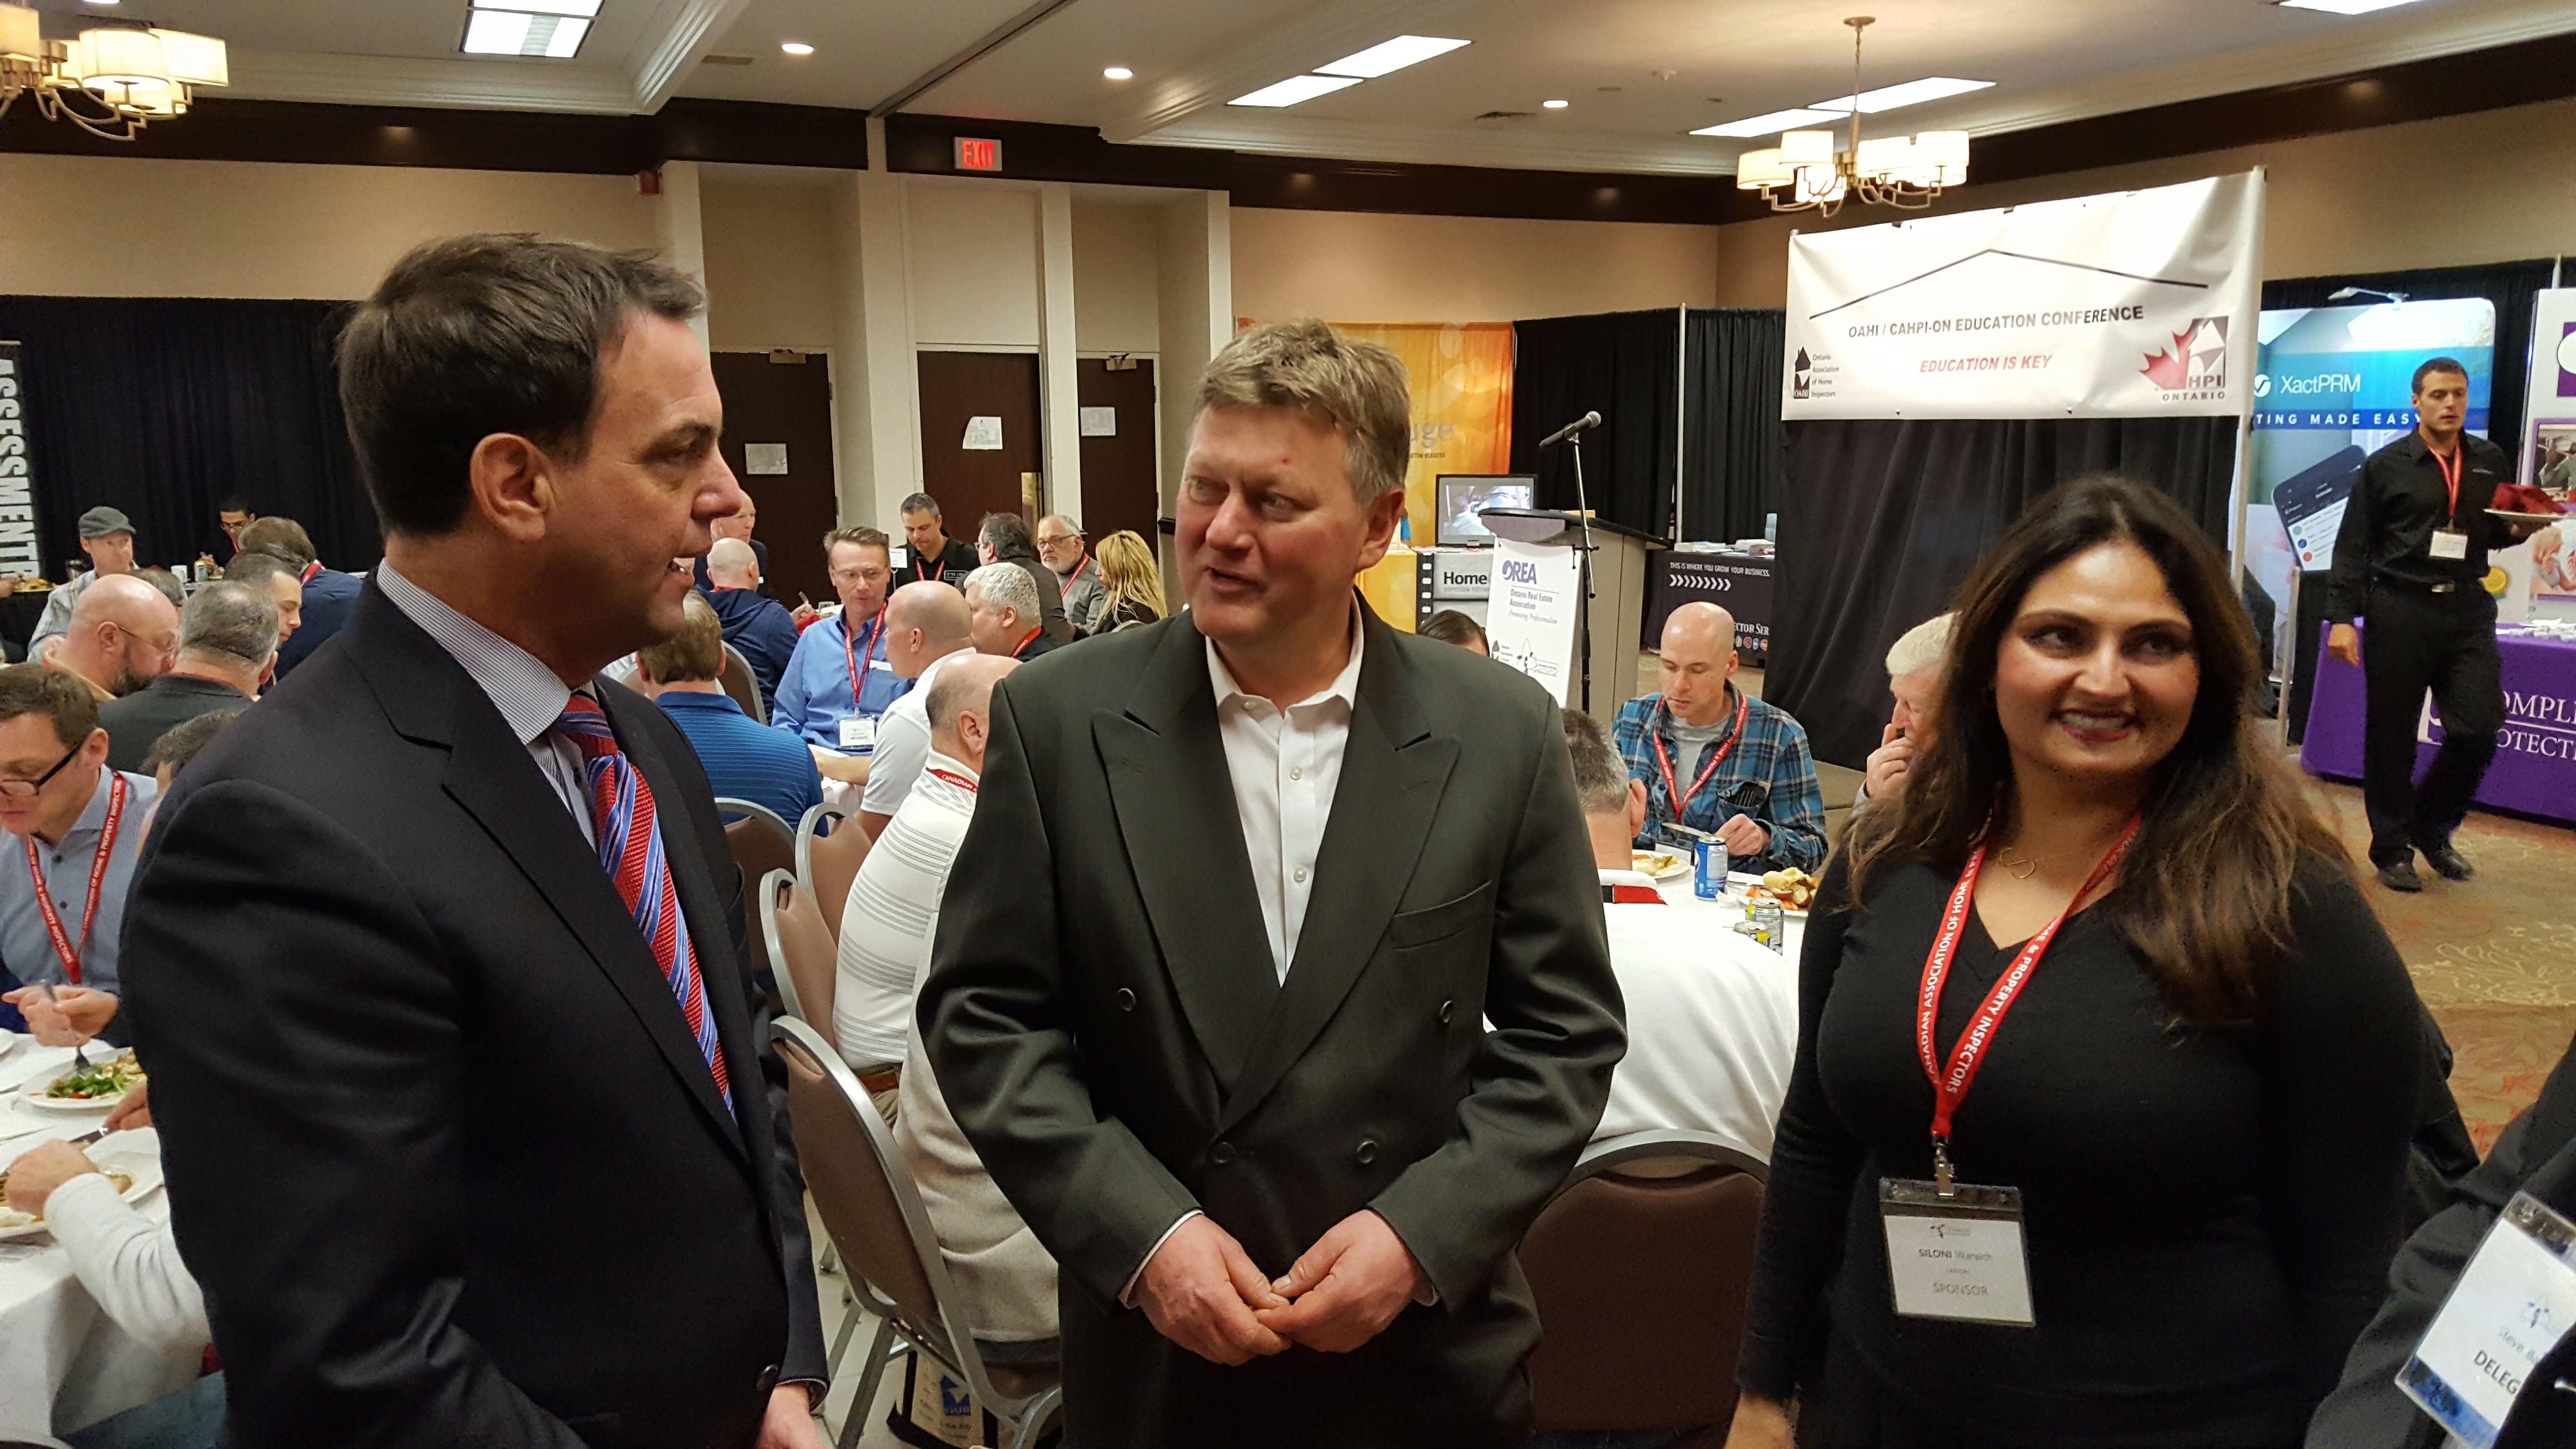 OREA's Tim Hudak with OAHI's Murray Parish and Siloni Waraich of Tarion